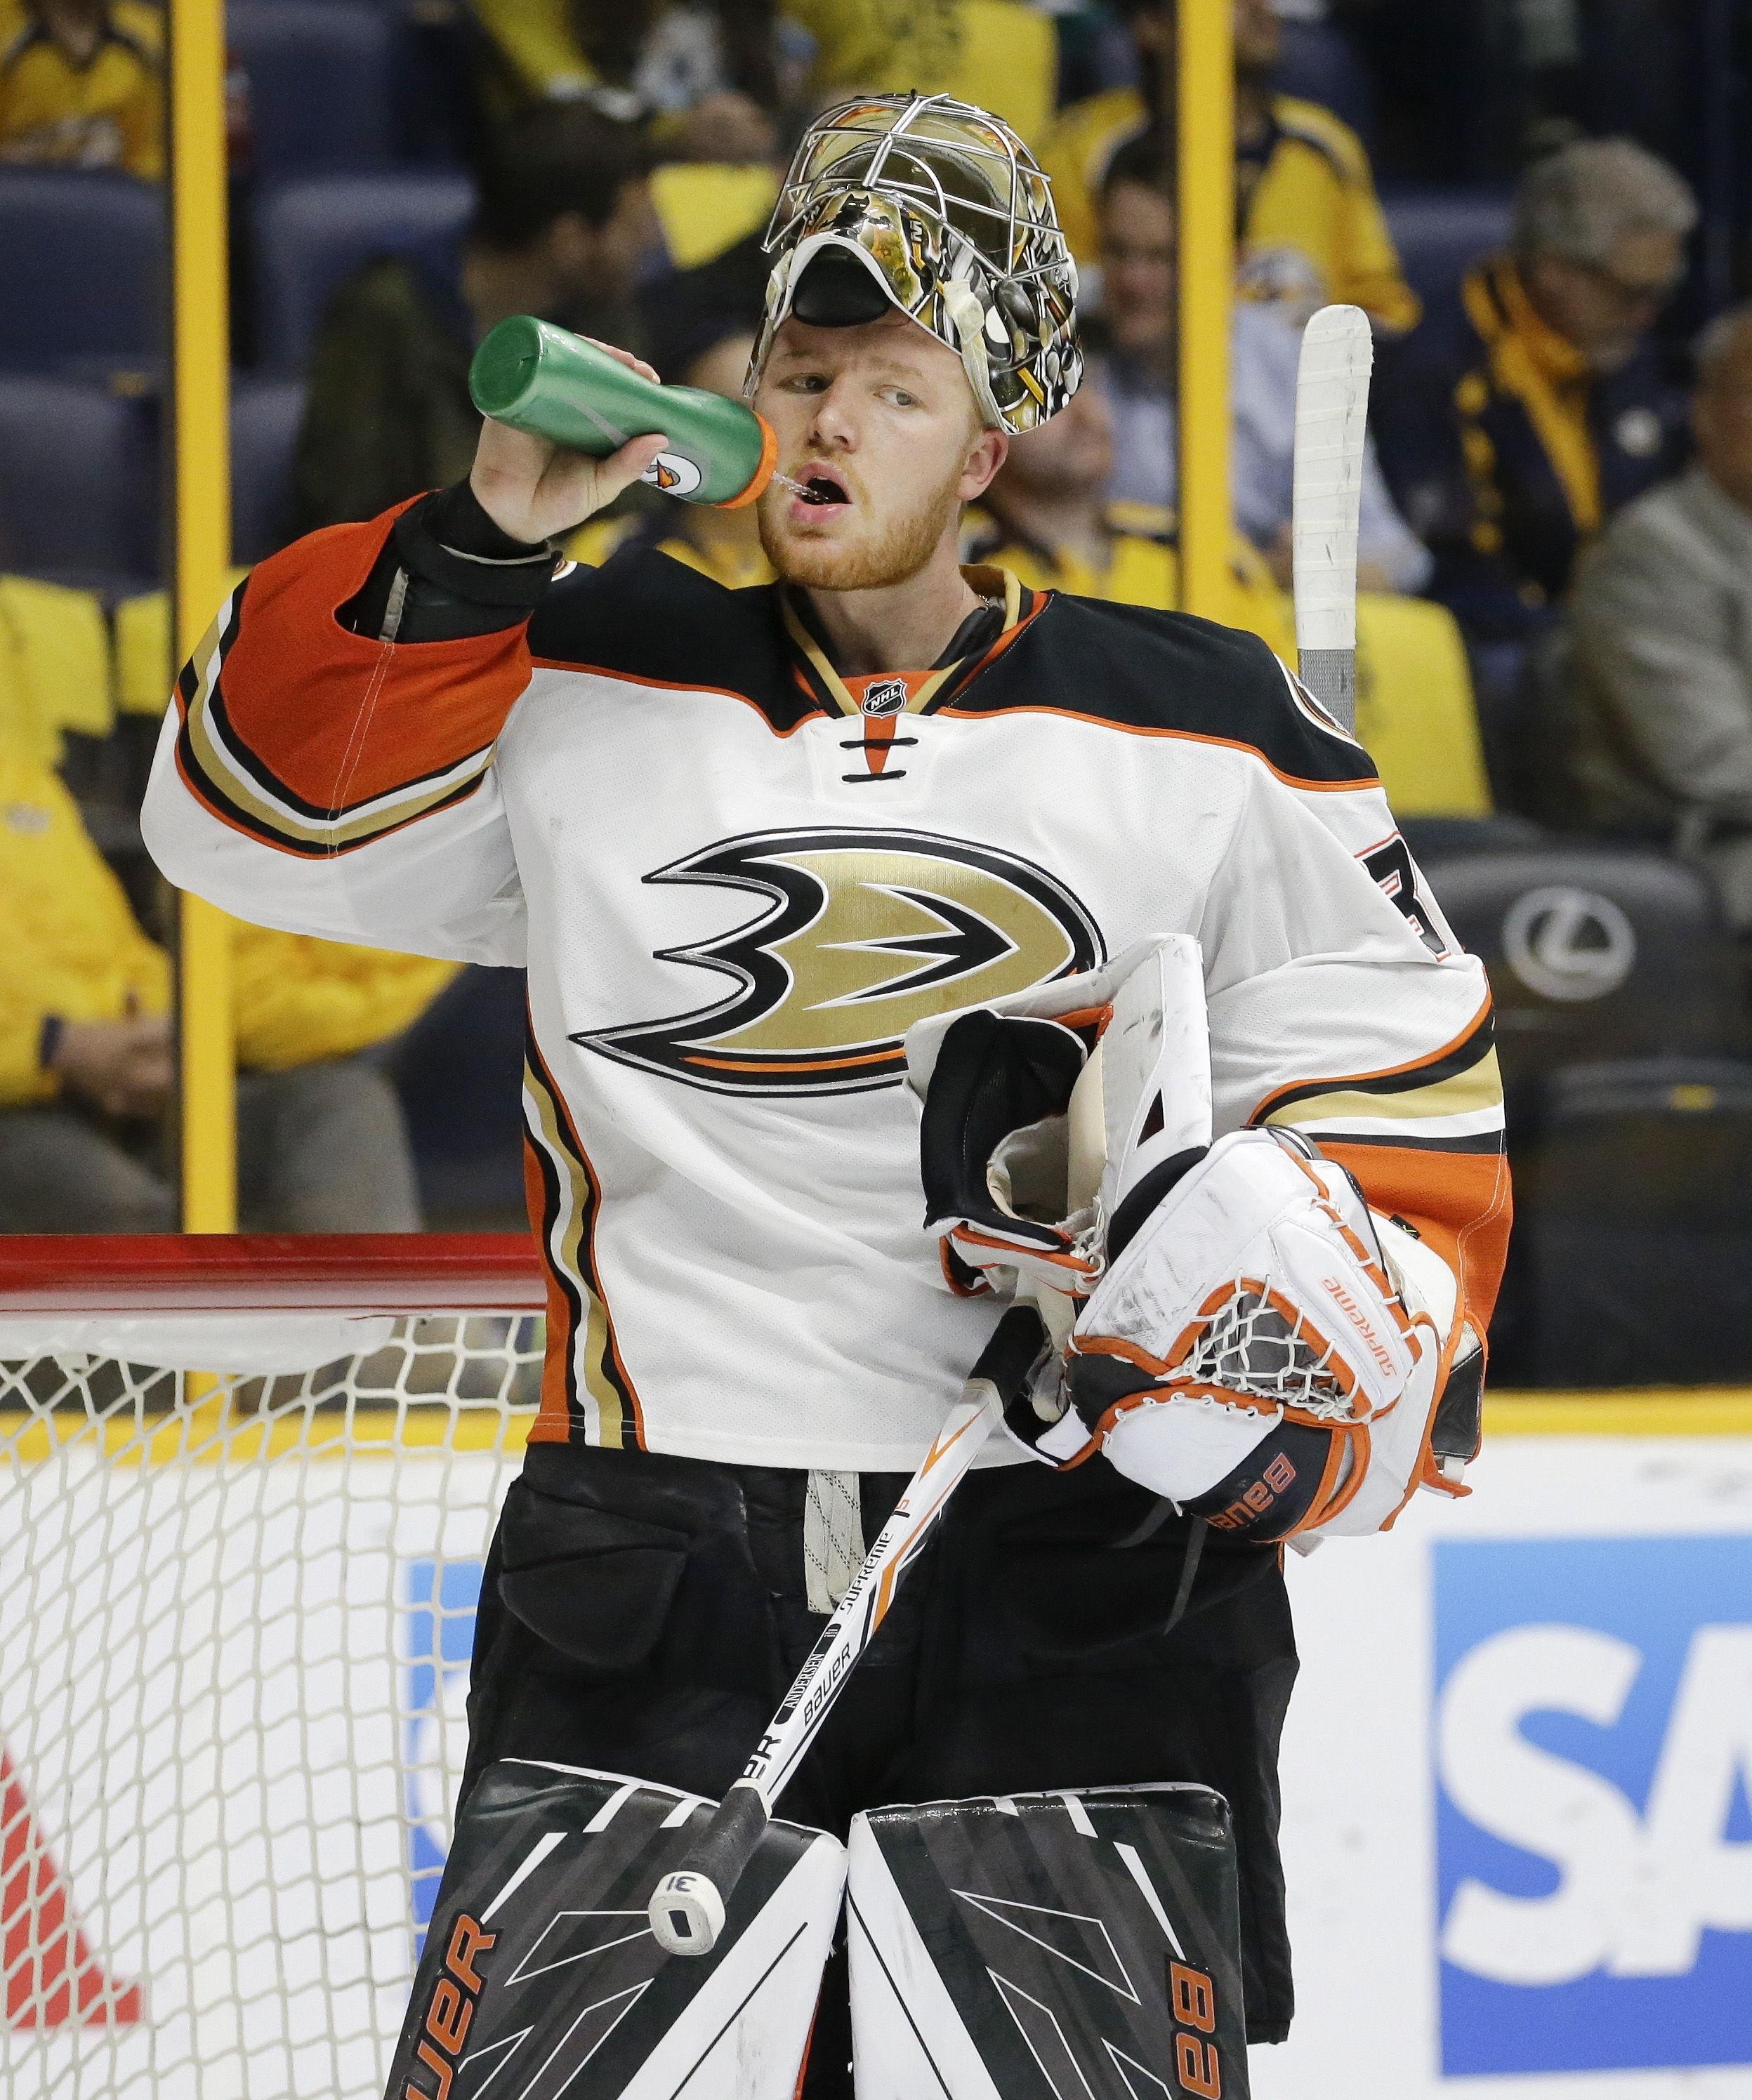 FILE - In this April 25, 2016 file photo, Anaheim Ducks goalie Frederik Andersen, of Denmark, takes a drink in the second period of Game 6 against the Nashville Predators in an NHL hockey first-round Stanley Cup playoff in Nashville, Tenn.  With the salar